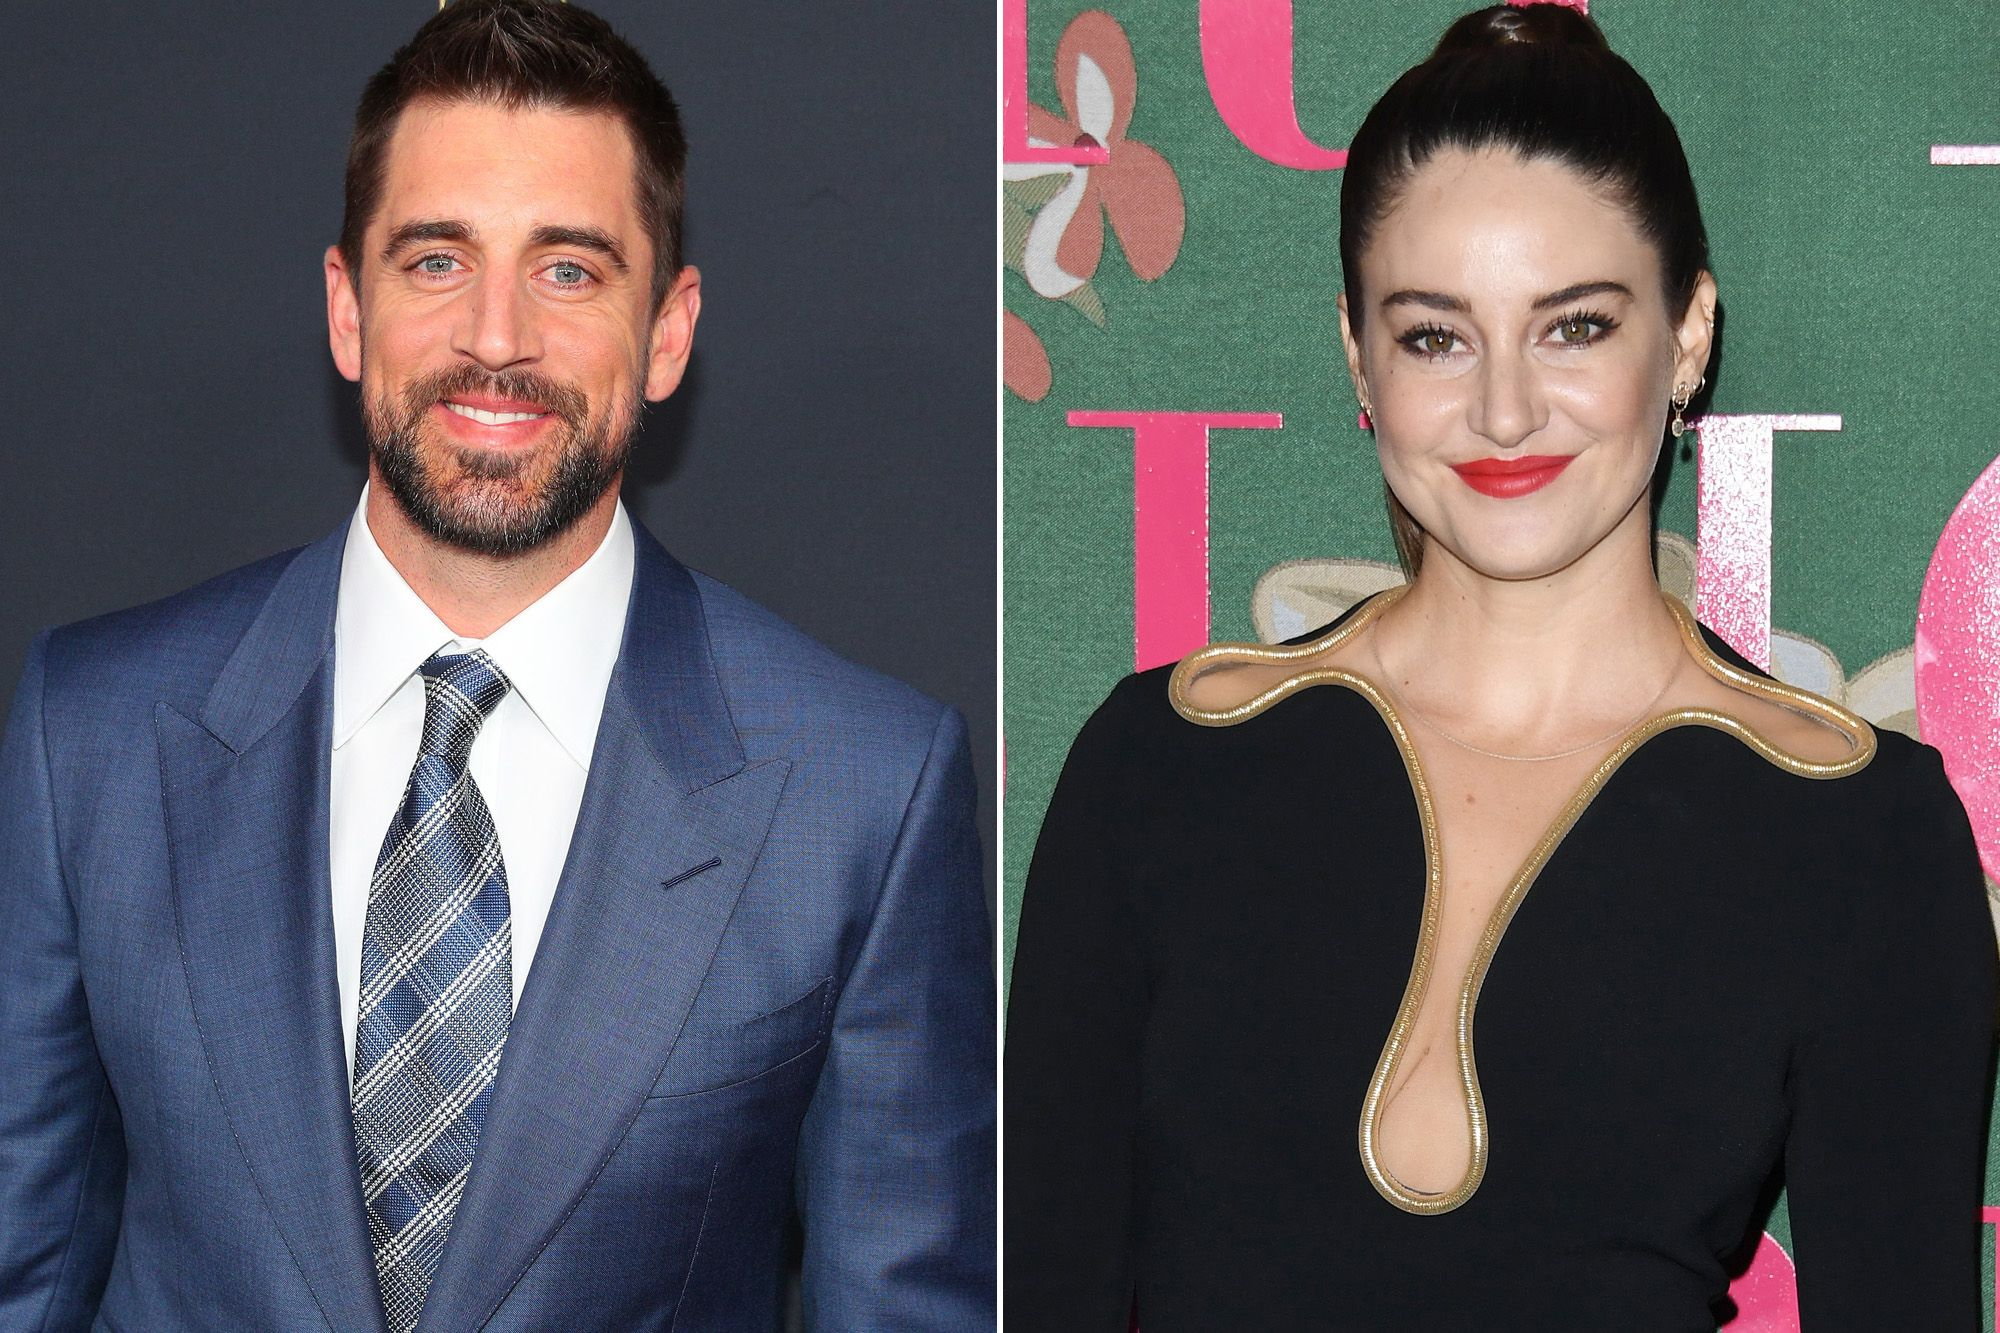 shailene-woodley-says-that-she-and-fiance-aaron-rodgers-were-meant-to-be-together-and-explains-why-they-moved-in-together-right-away